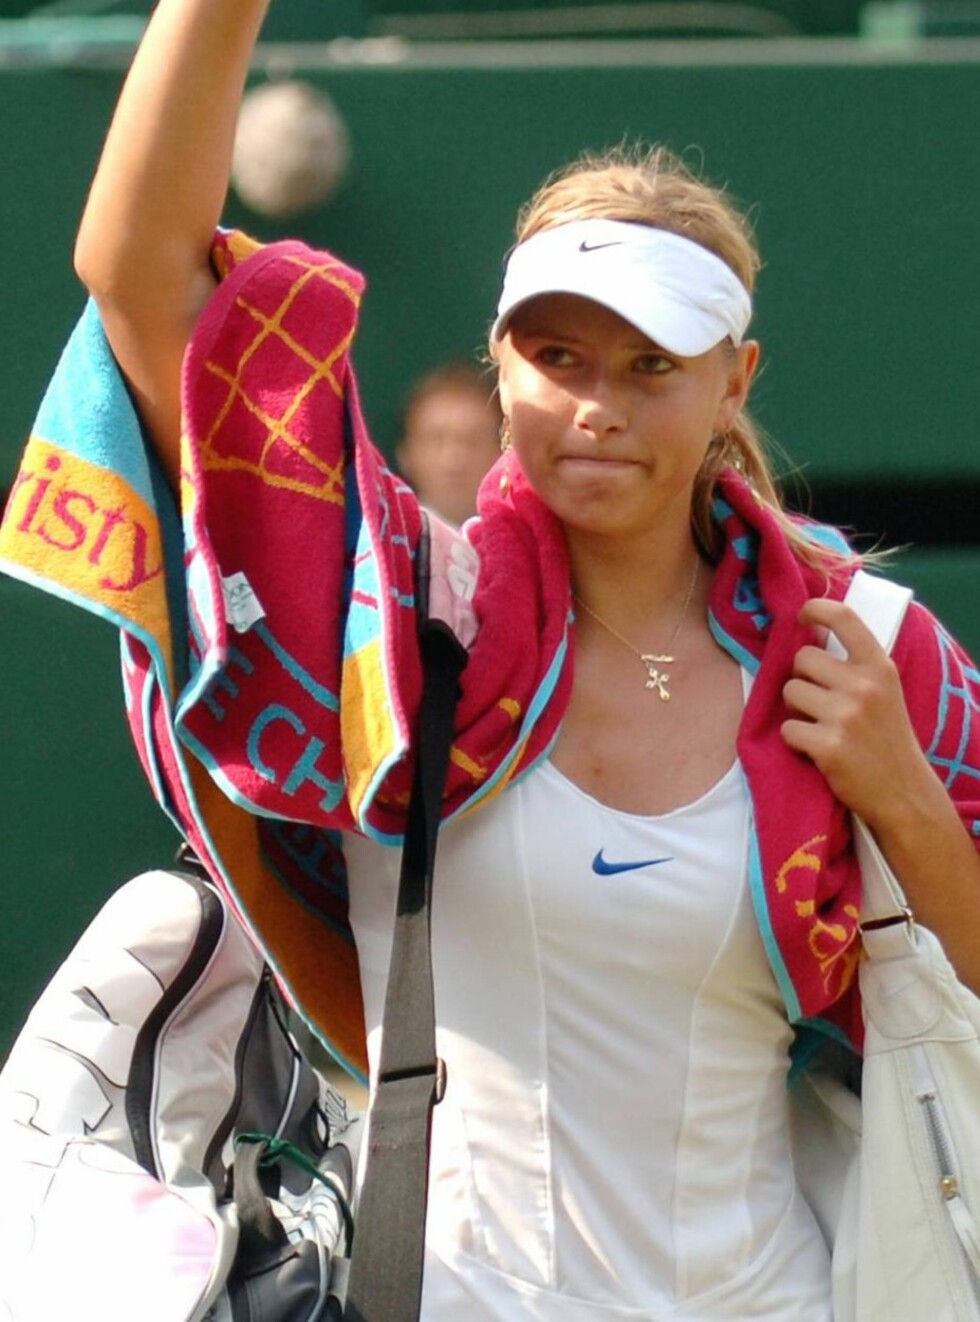 Maria Sharapova waves to the crowd after her Women's Singles semifinal match against Amelie Mauresmo of France, on Wimbledon's Centre Court, Thursday, July 6, 2006. Mauresmo won the match 6-3, 3-6, 6-2. (AP Photo/Rebecca Naden, Pool) Foto: AP